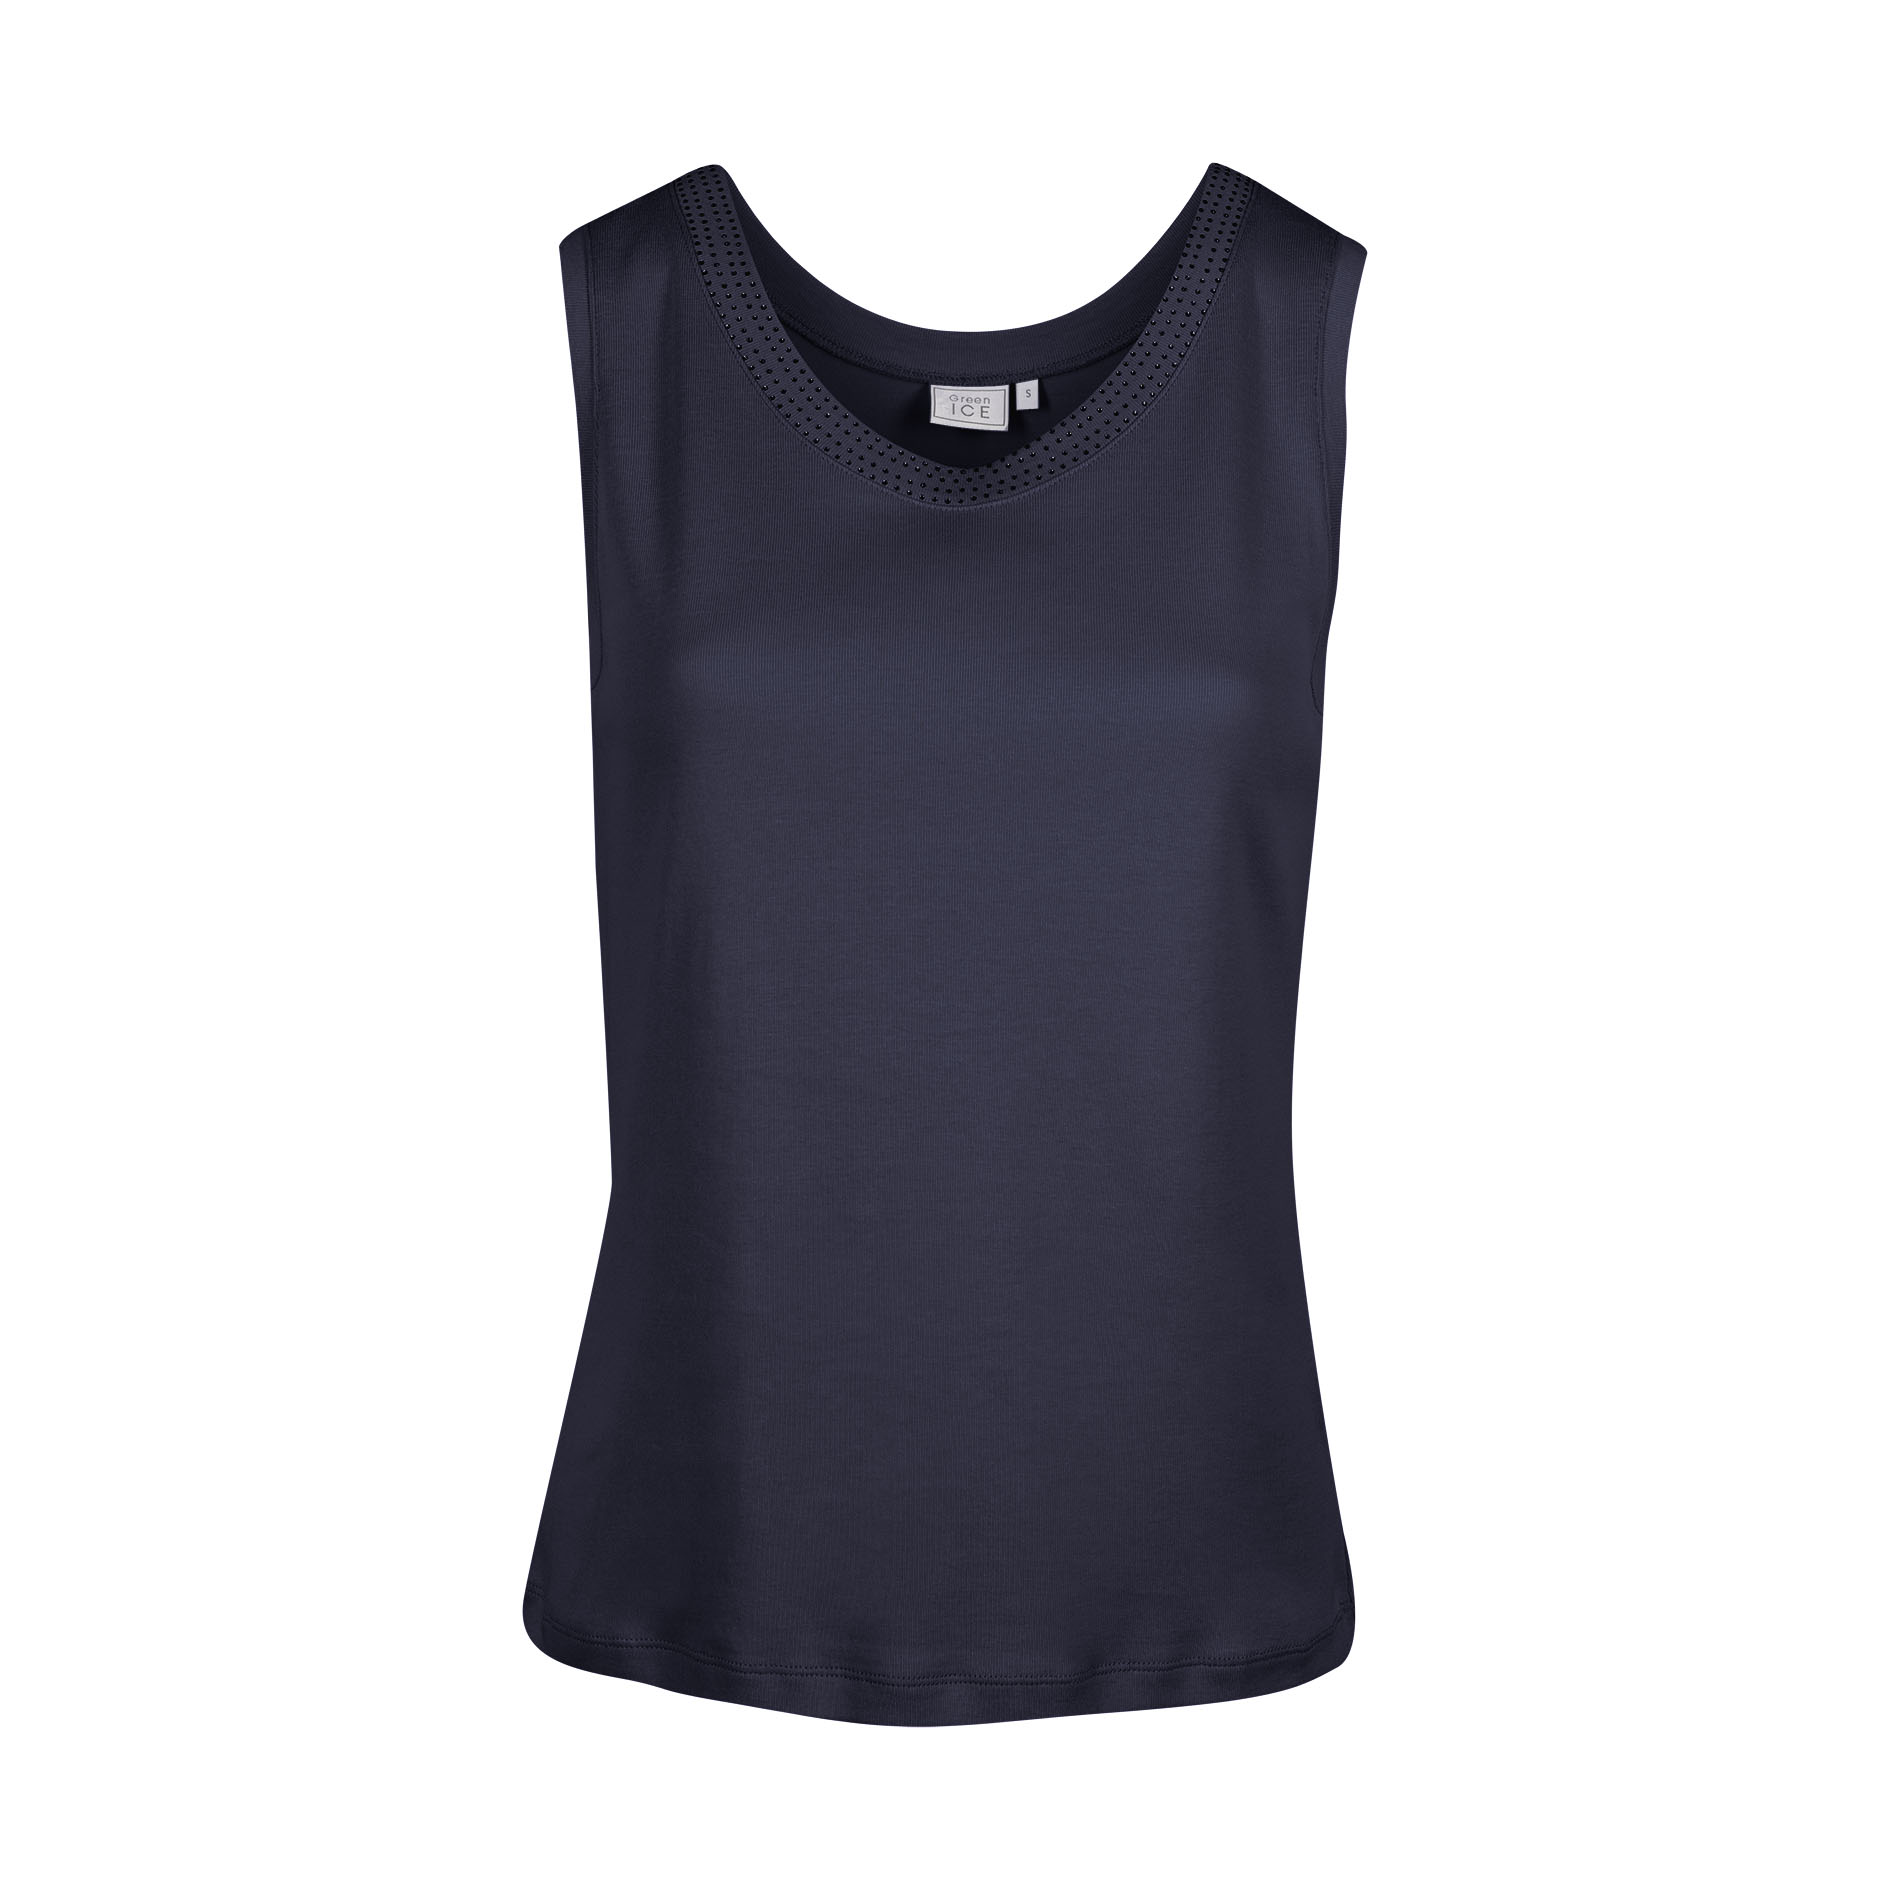 Top 'Heppen' Navy